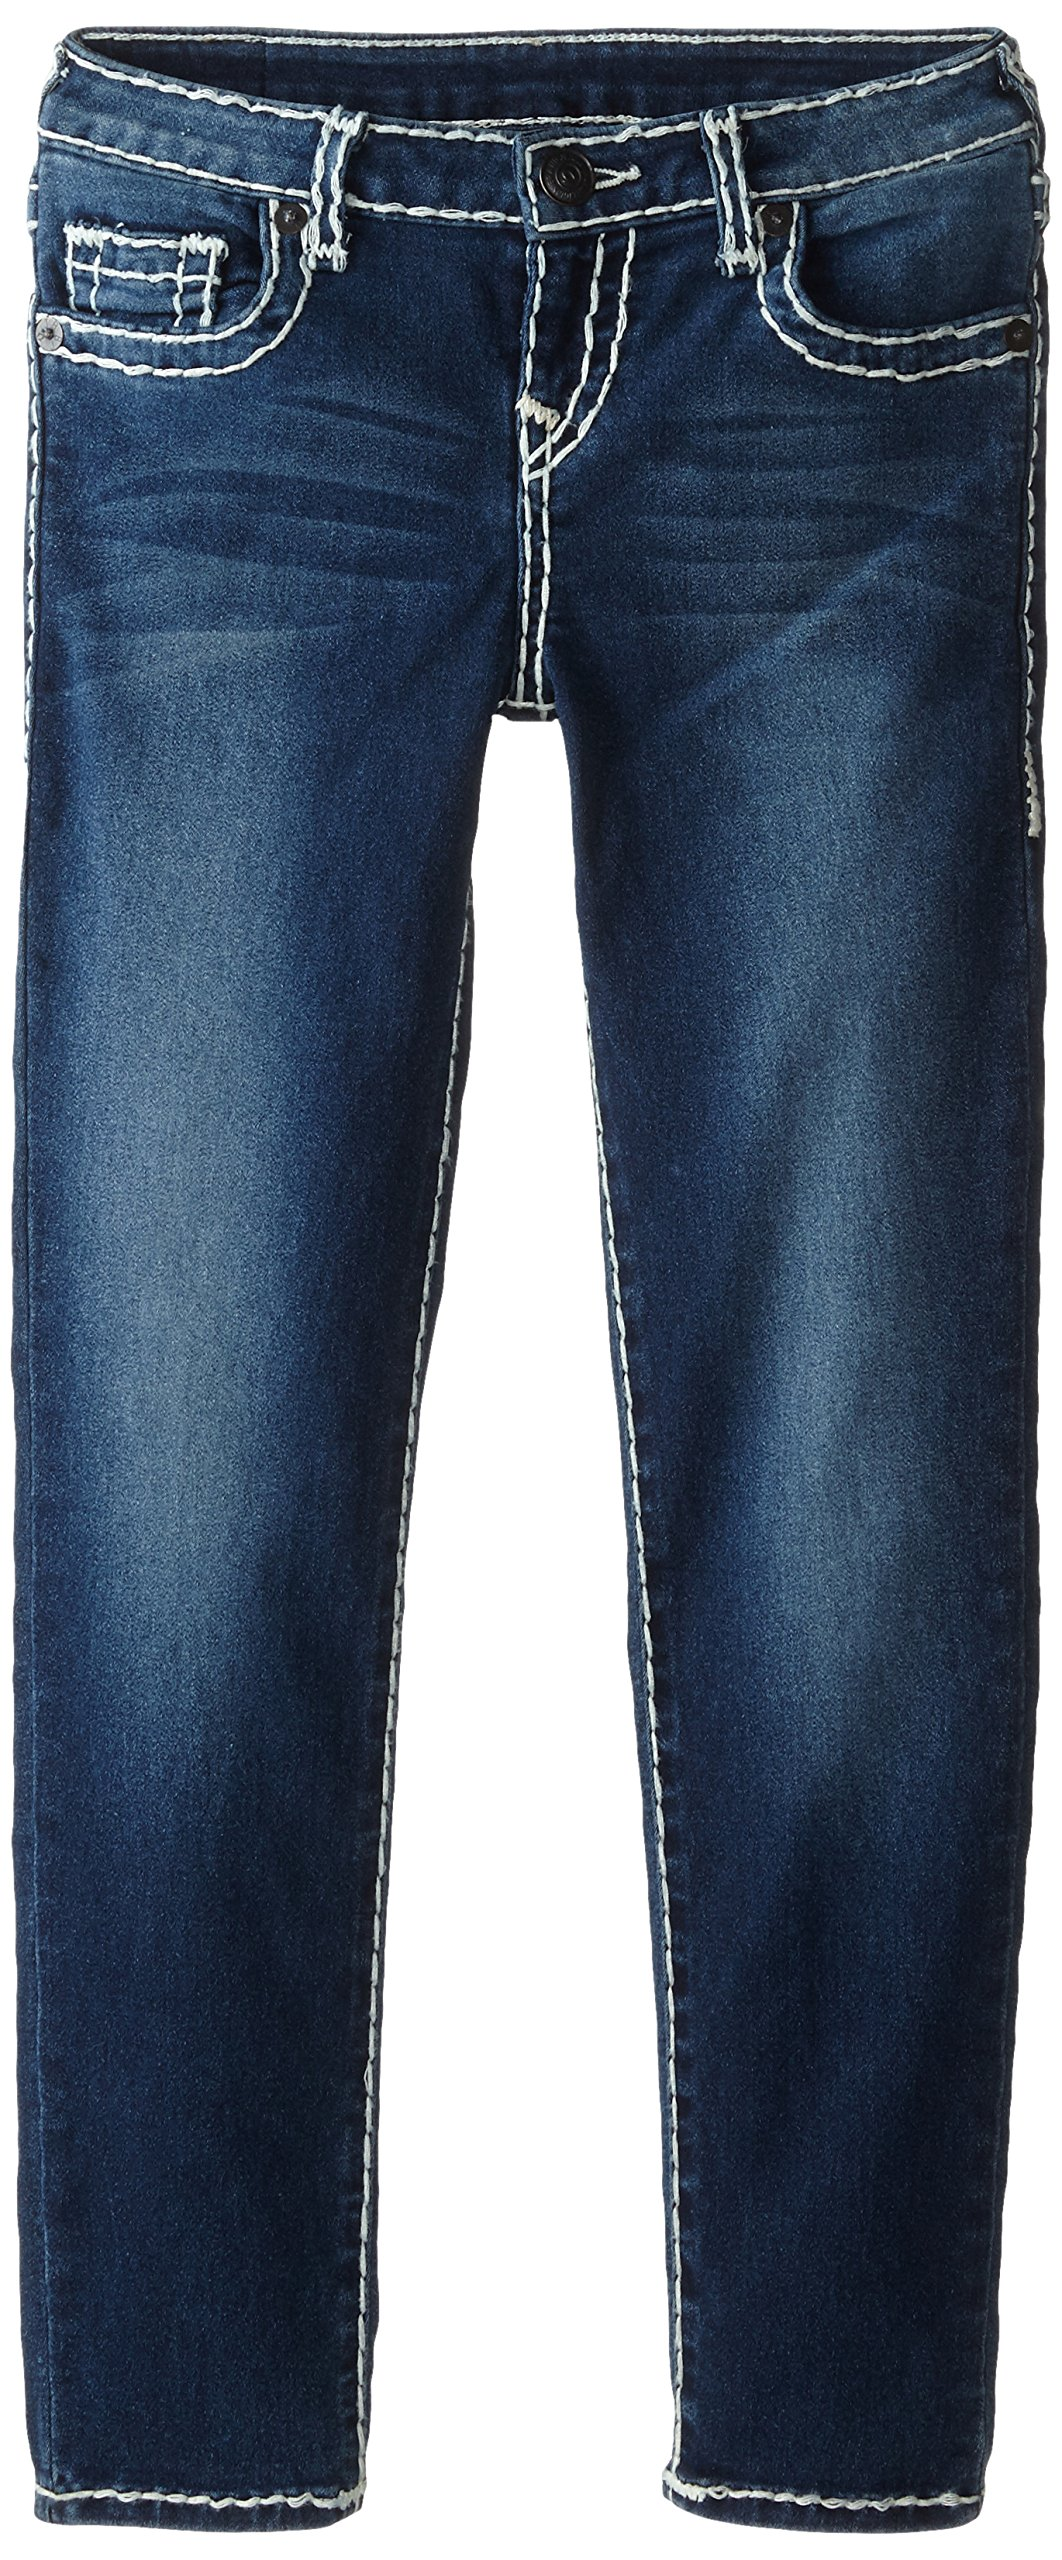 True Religion Girls' Casey Skinny Jean-Natural Super T, Ancient, 2T